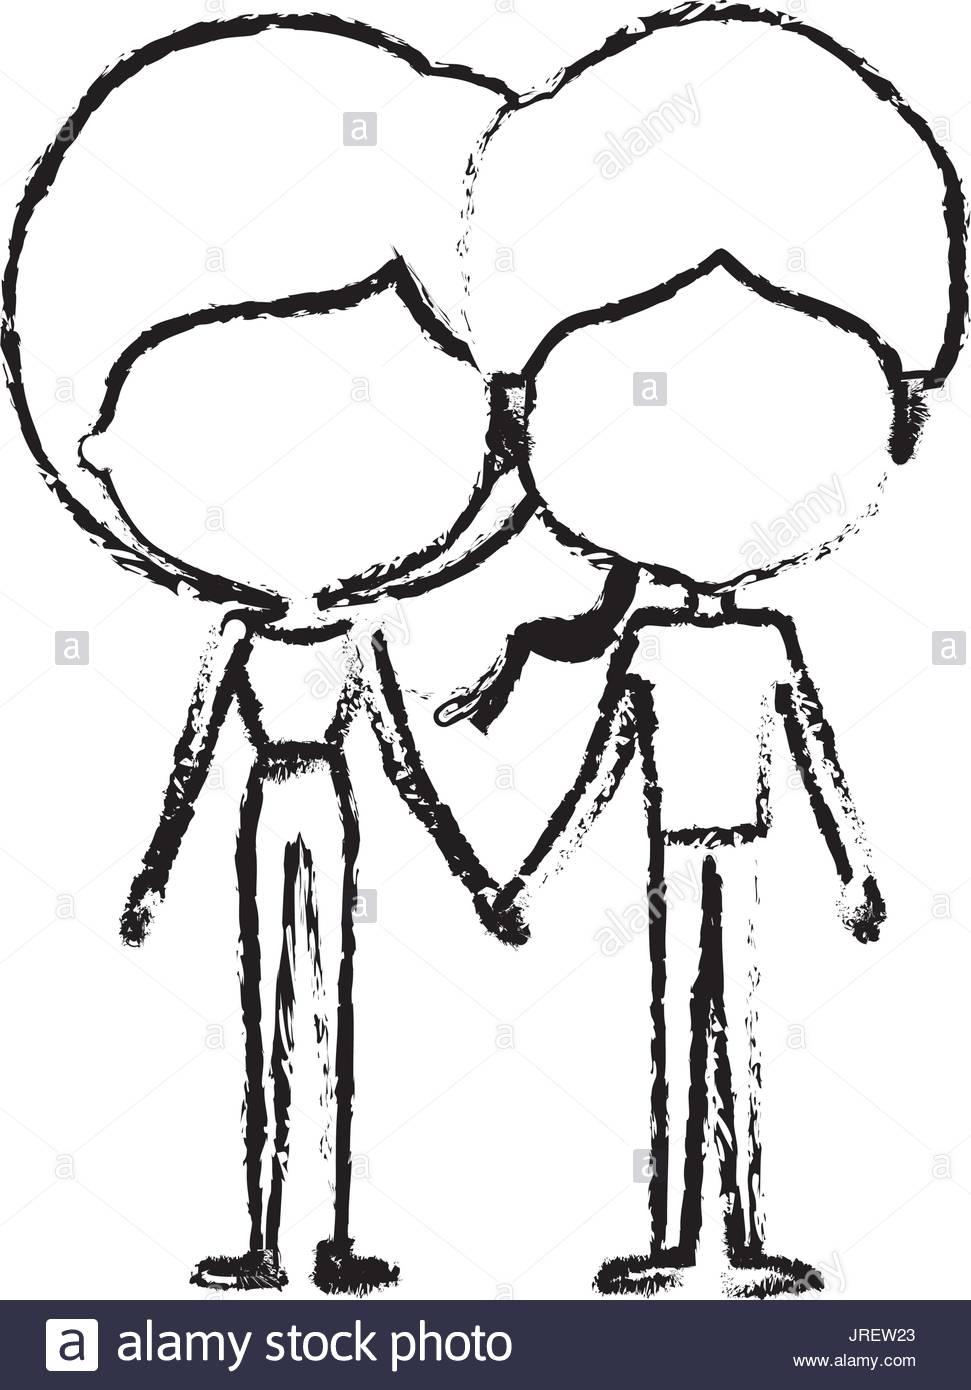 971x1390 Blurred Silhouette Of Caricature Faceless Thin Couple In Clothes